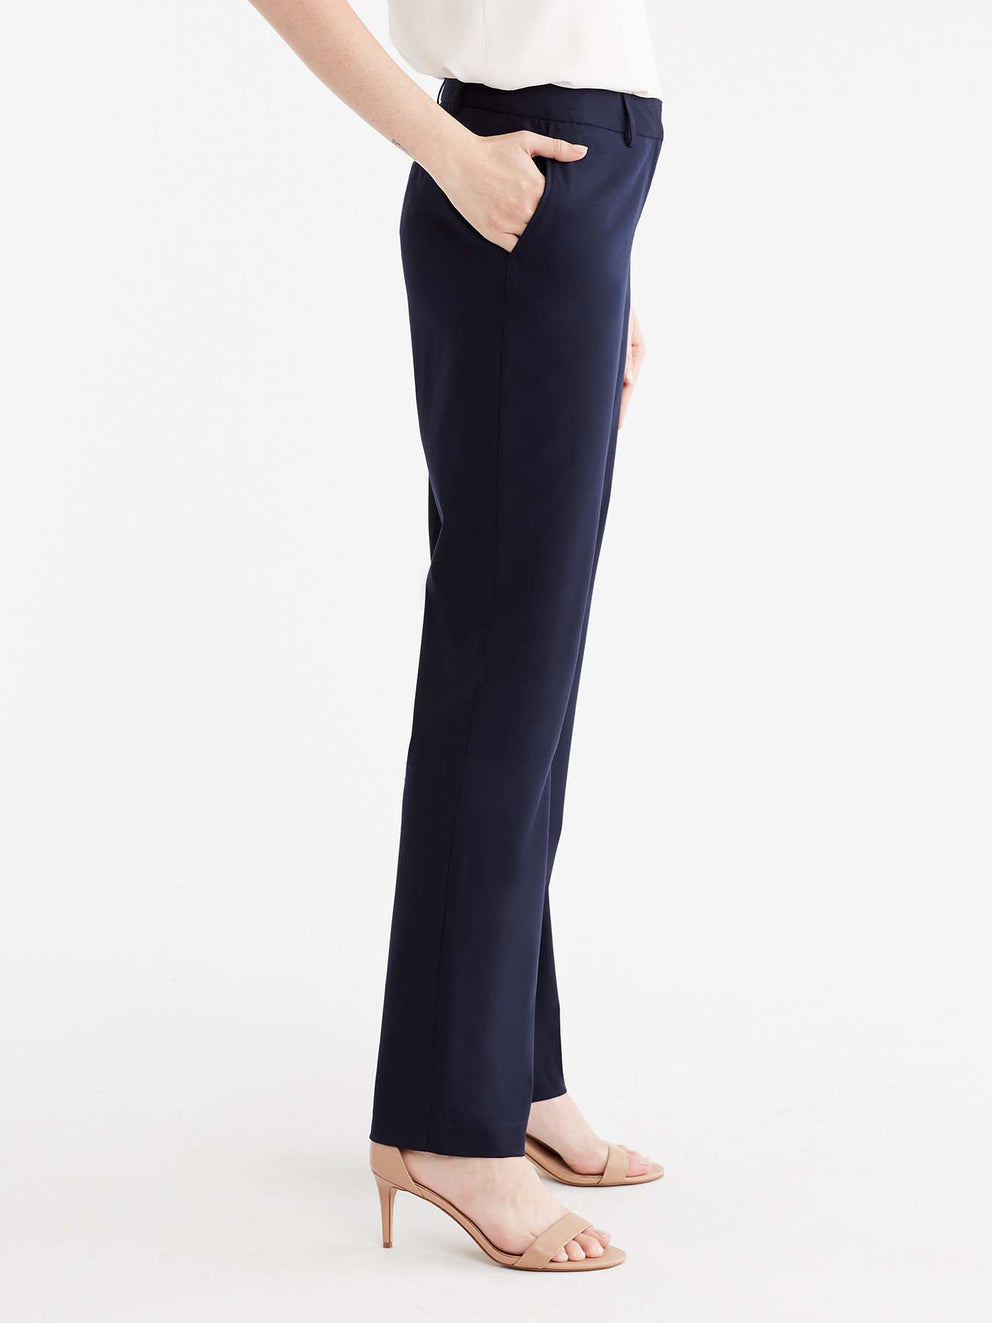 The Jones New York Washable Sydney Pant in color Navy - Image Position 5